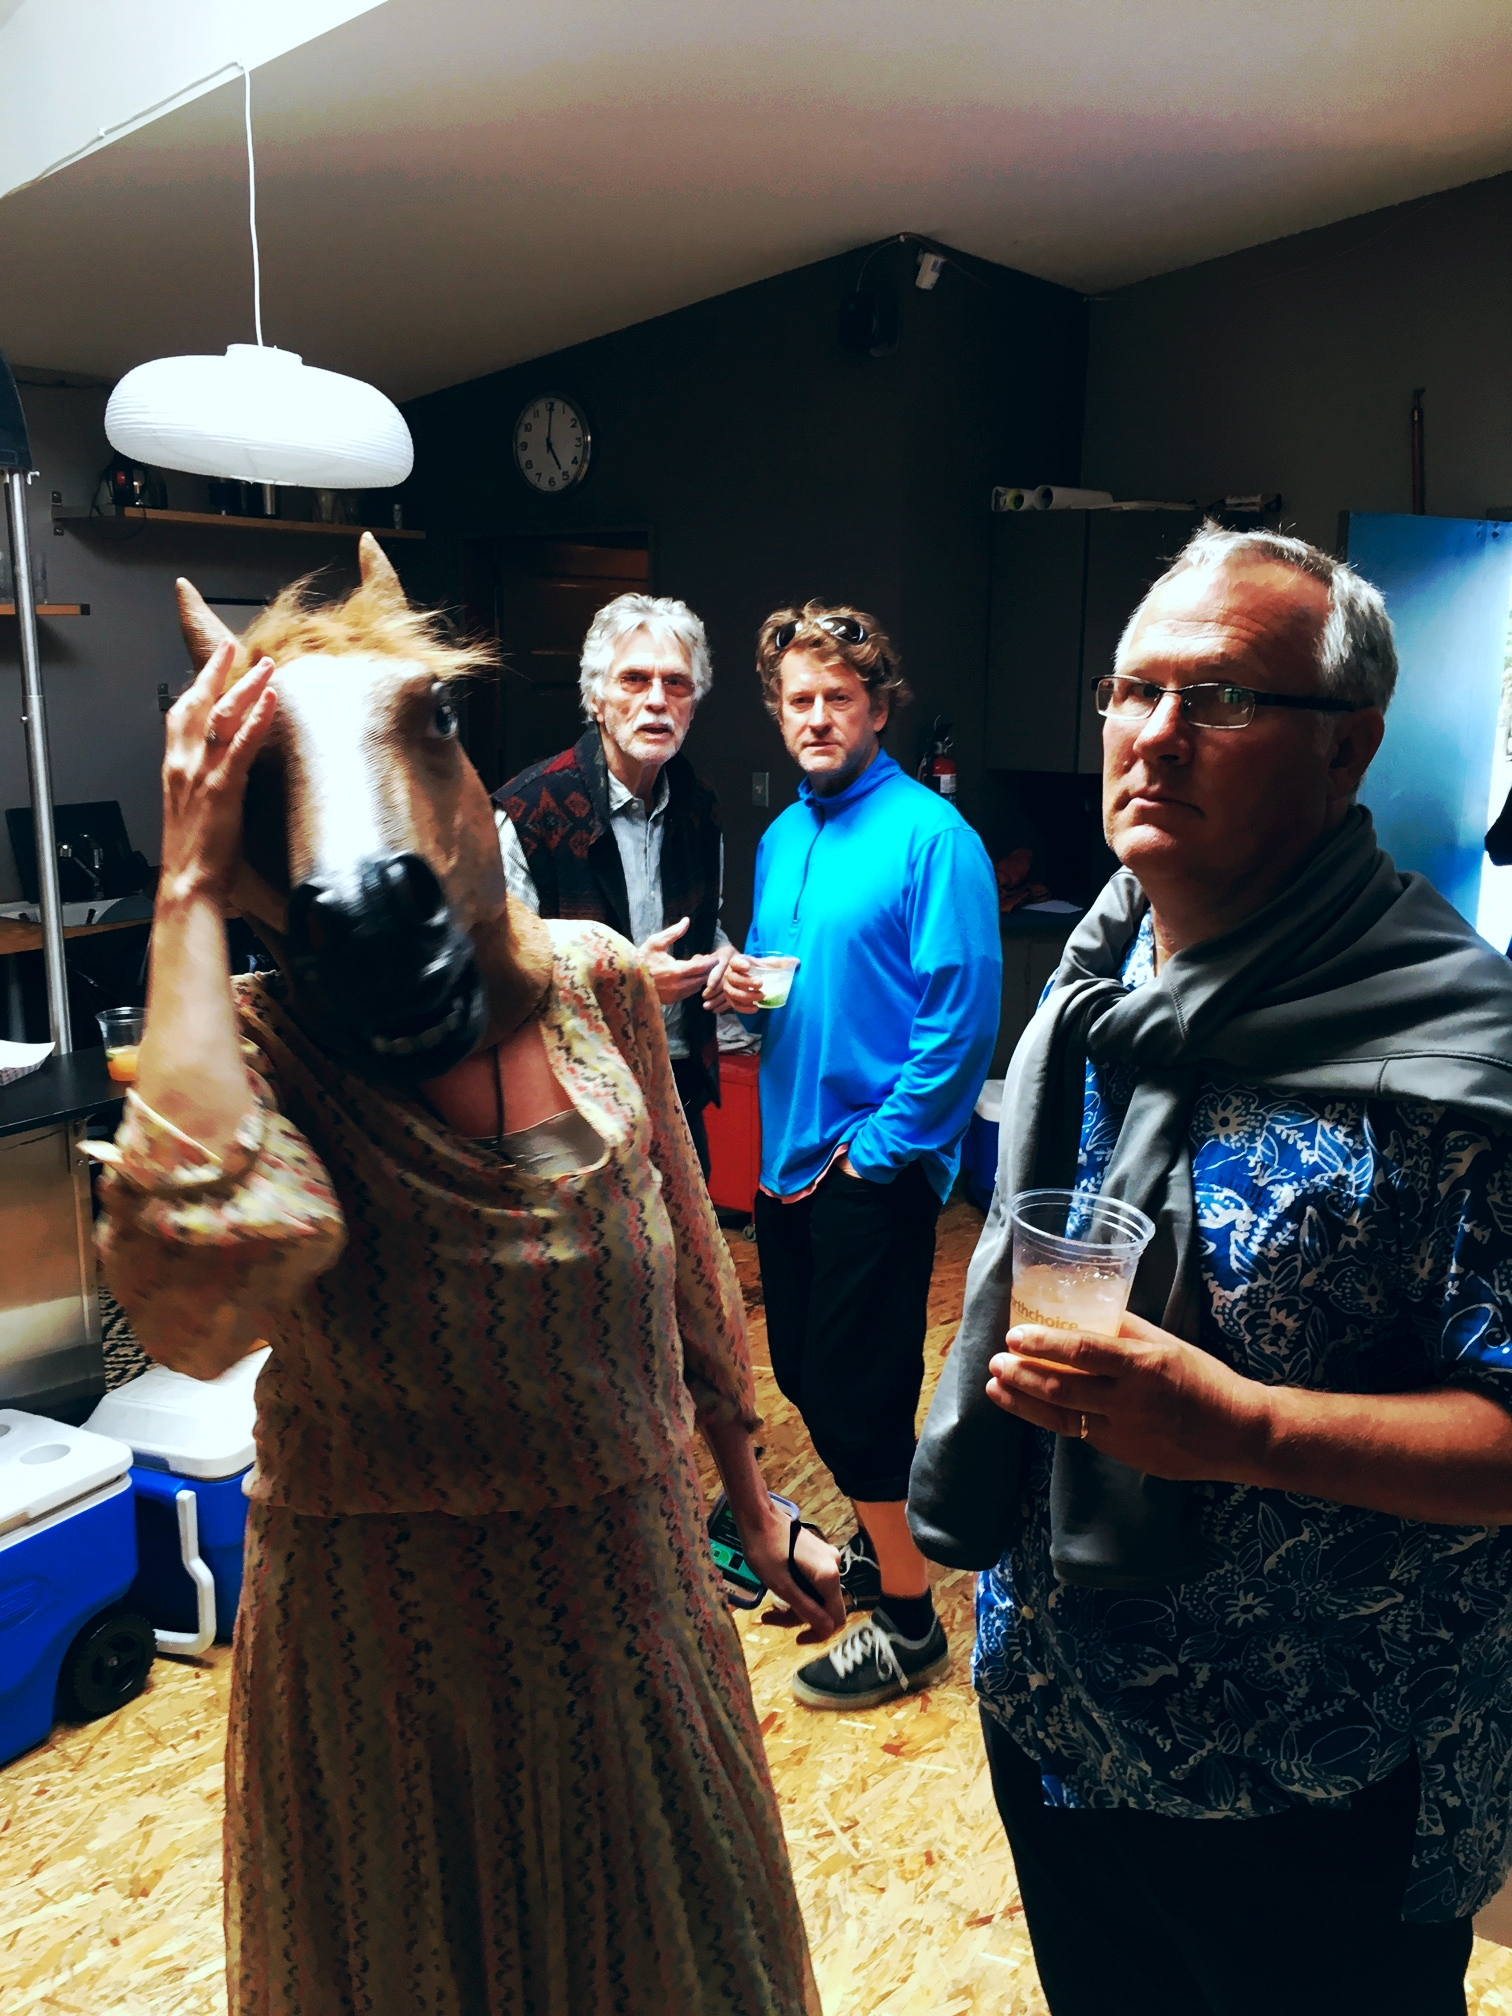 Brad Lenz and Tom Skerritt look on in confused bemusement as Chris Karges enjoys a beverage while lovely Mary Karges, (post-equine facial reconstruction surgery.) weeps for the bicycle seats.